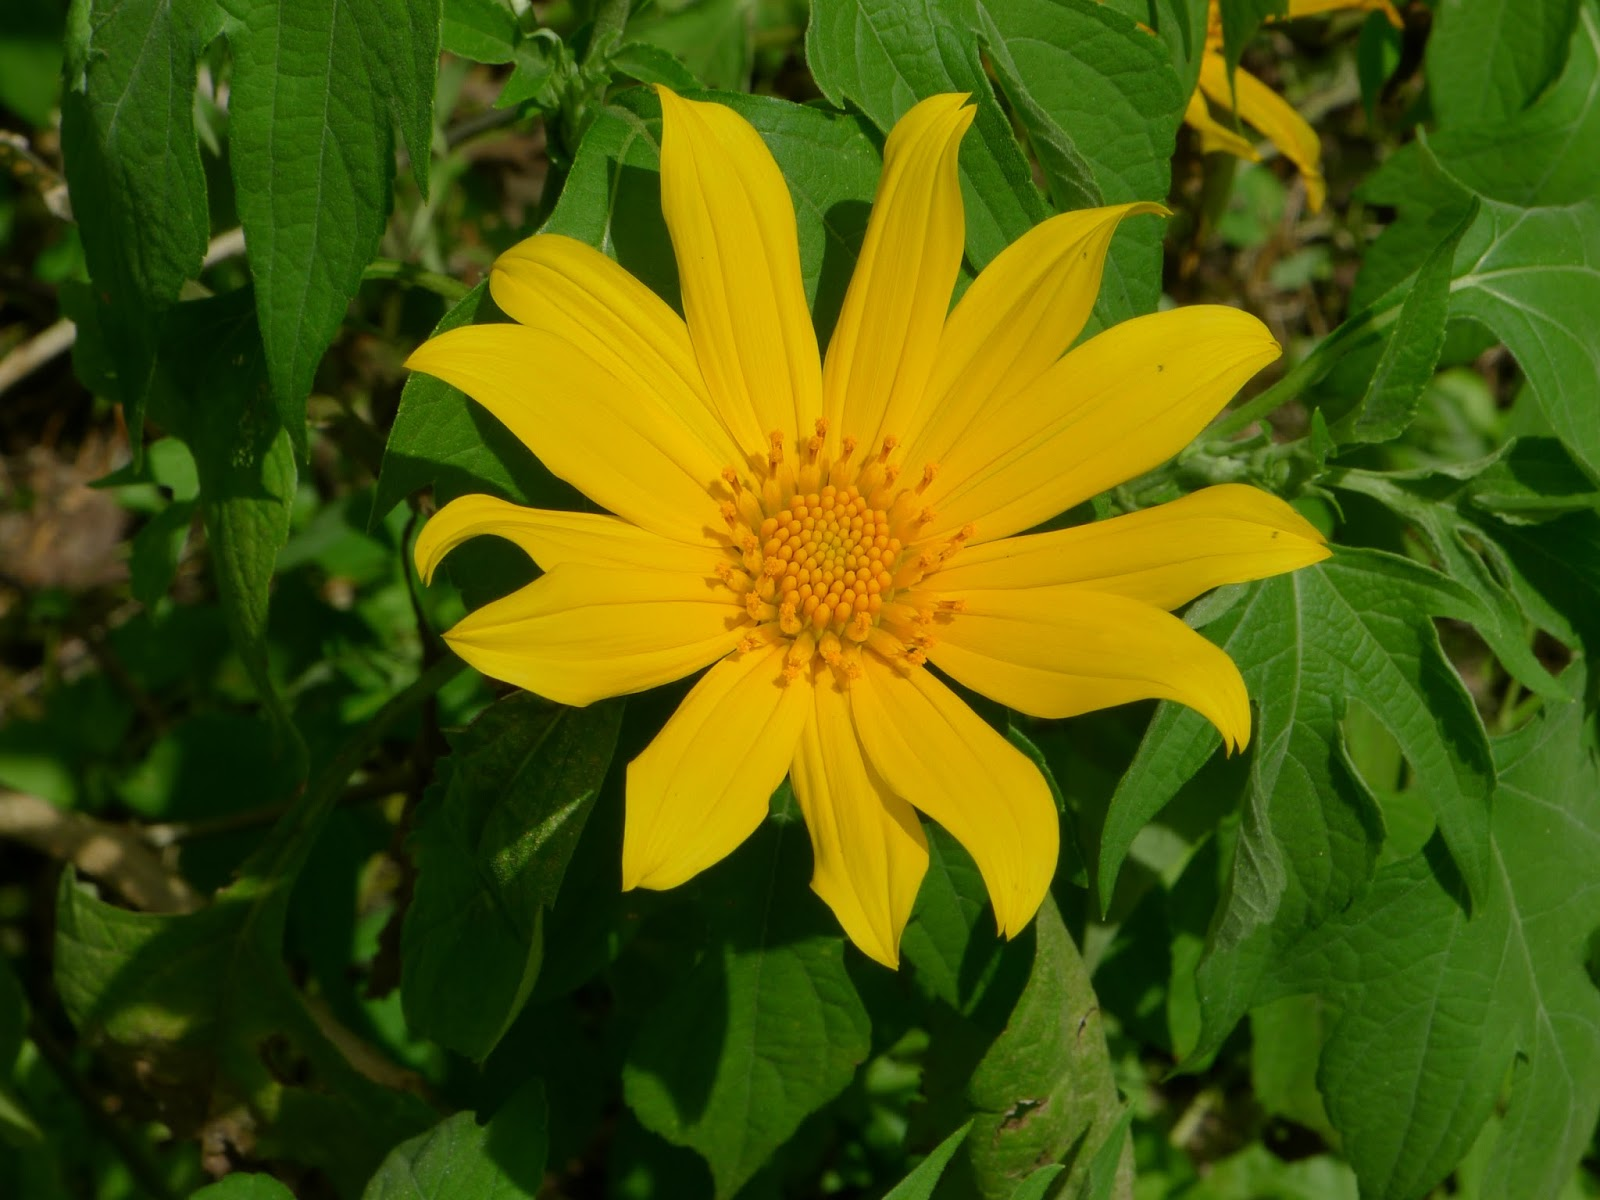 Coffs harbour garden club weeds japanese sunflower have you noticed the abundant yellow flowers growing up the steep slopes that were once banana plantations at korora and other places along the coffs coast mightylinksfo